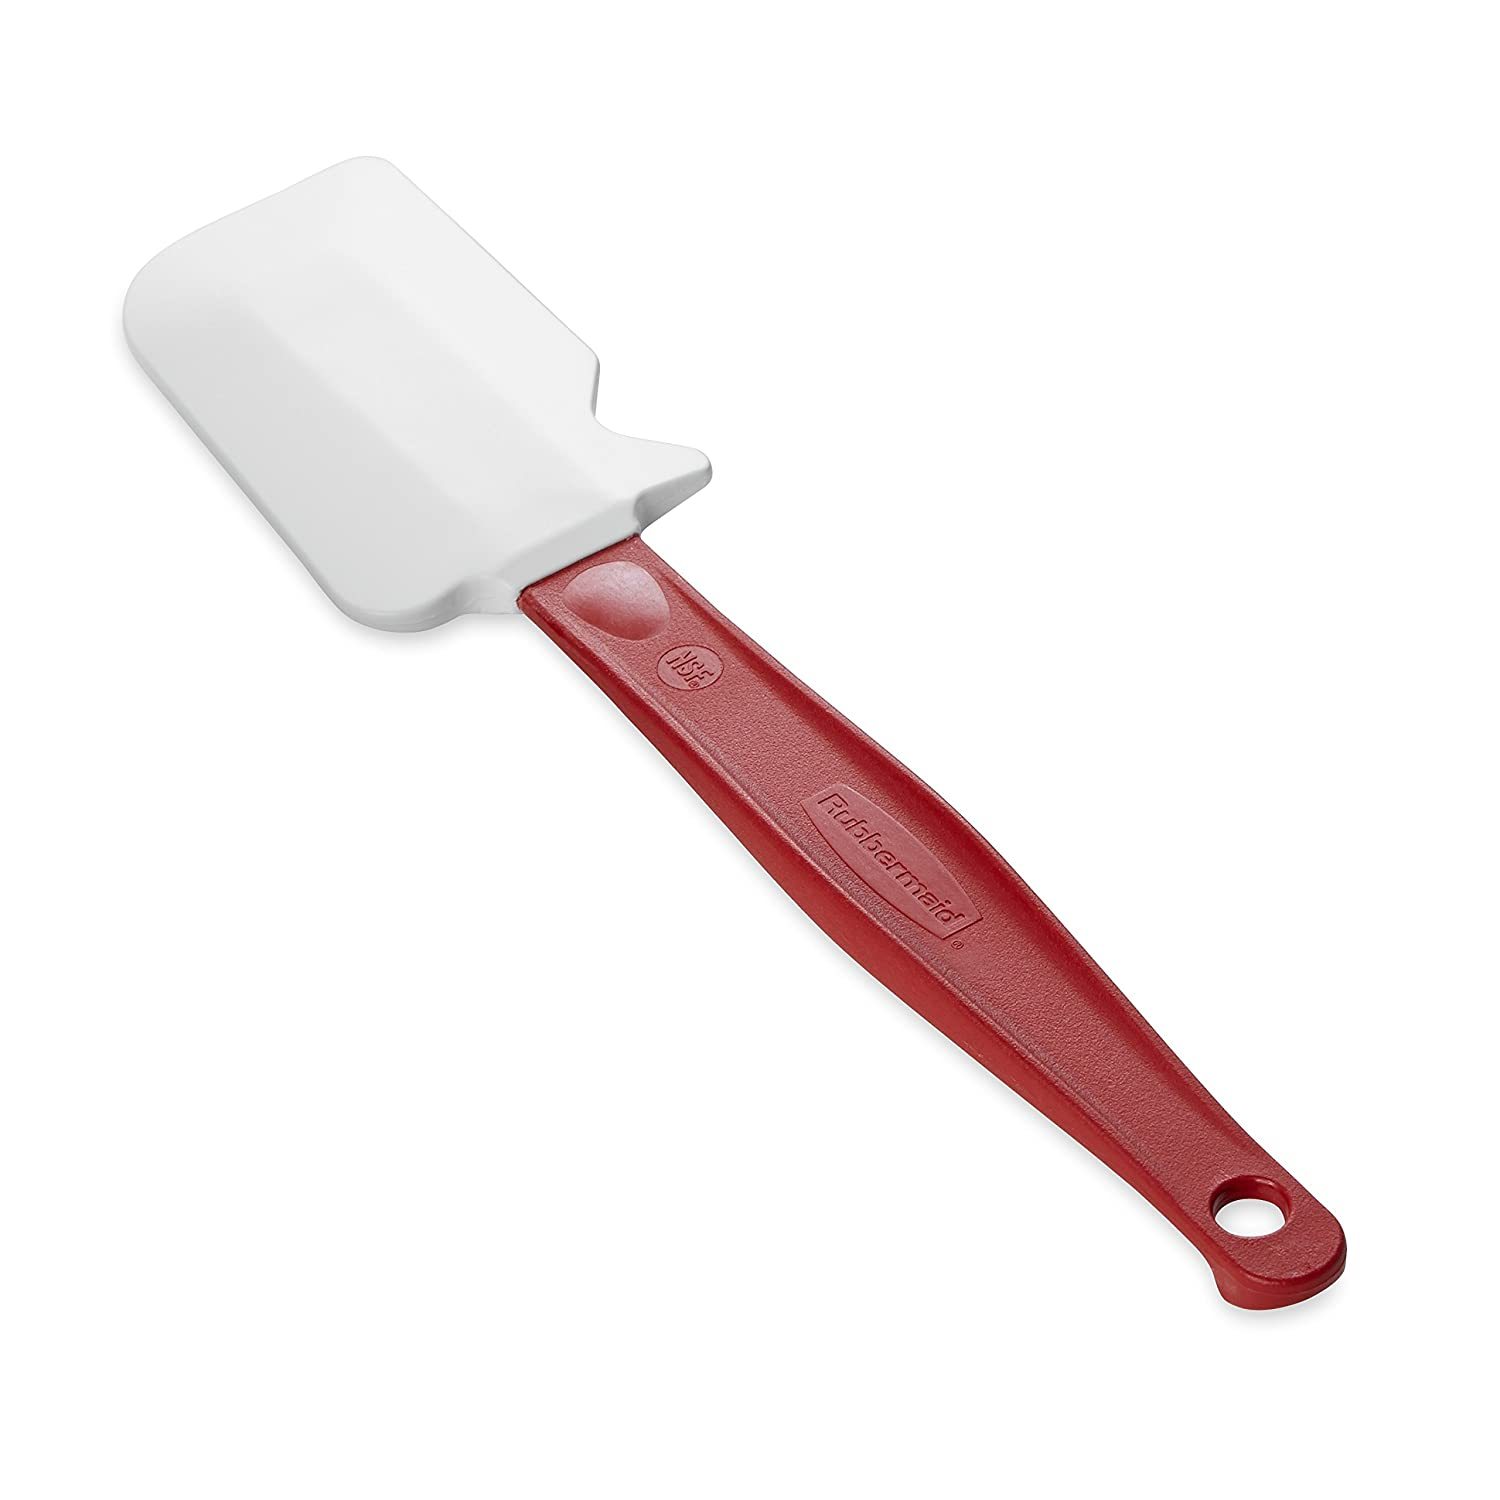 "Rubbermaid Commercial Products FG1962000000 High Heat Silicone Spatula, 9.5"", Red Handle"